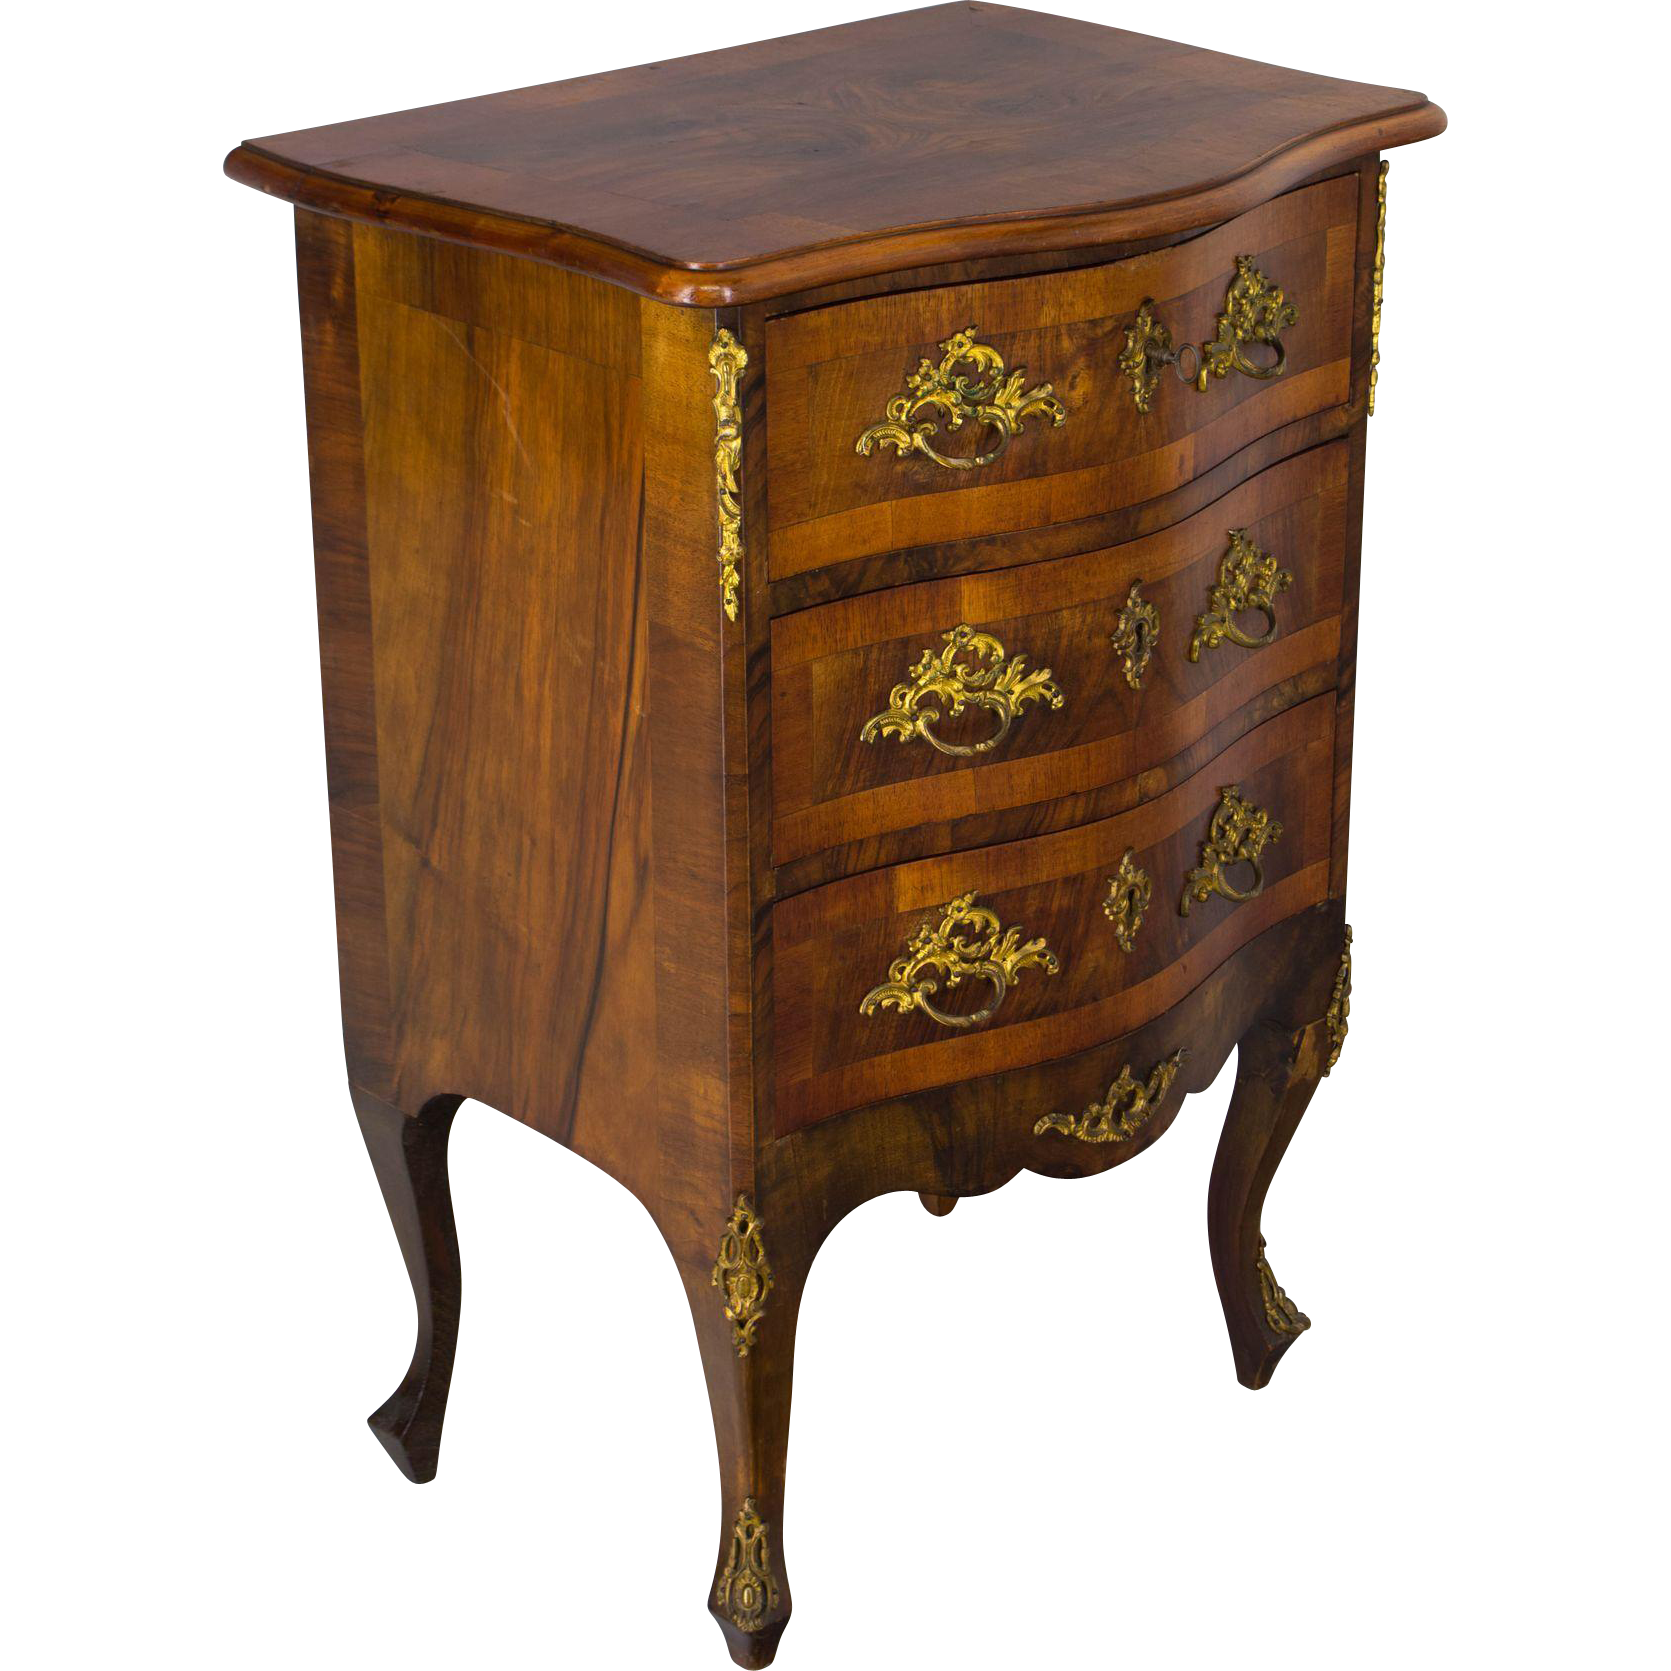 louis xv style commode or chest of drawers from ofleury on. Black Bedroom Furniture Sets. Home Design Ideas